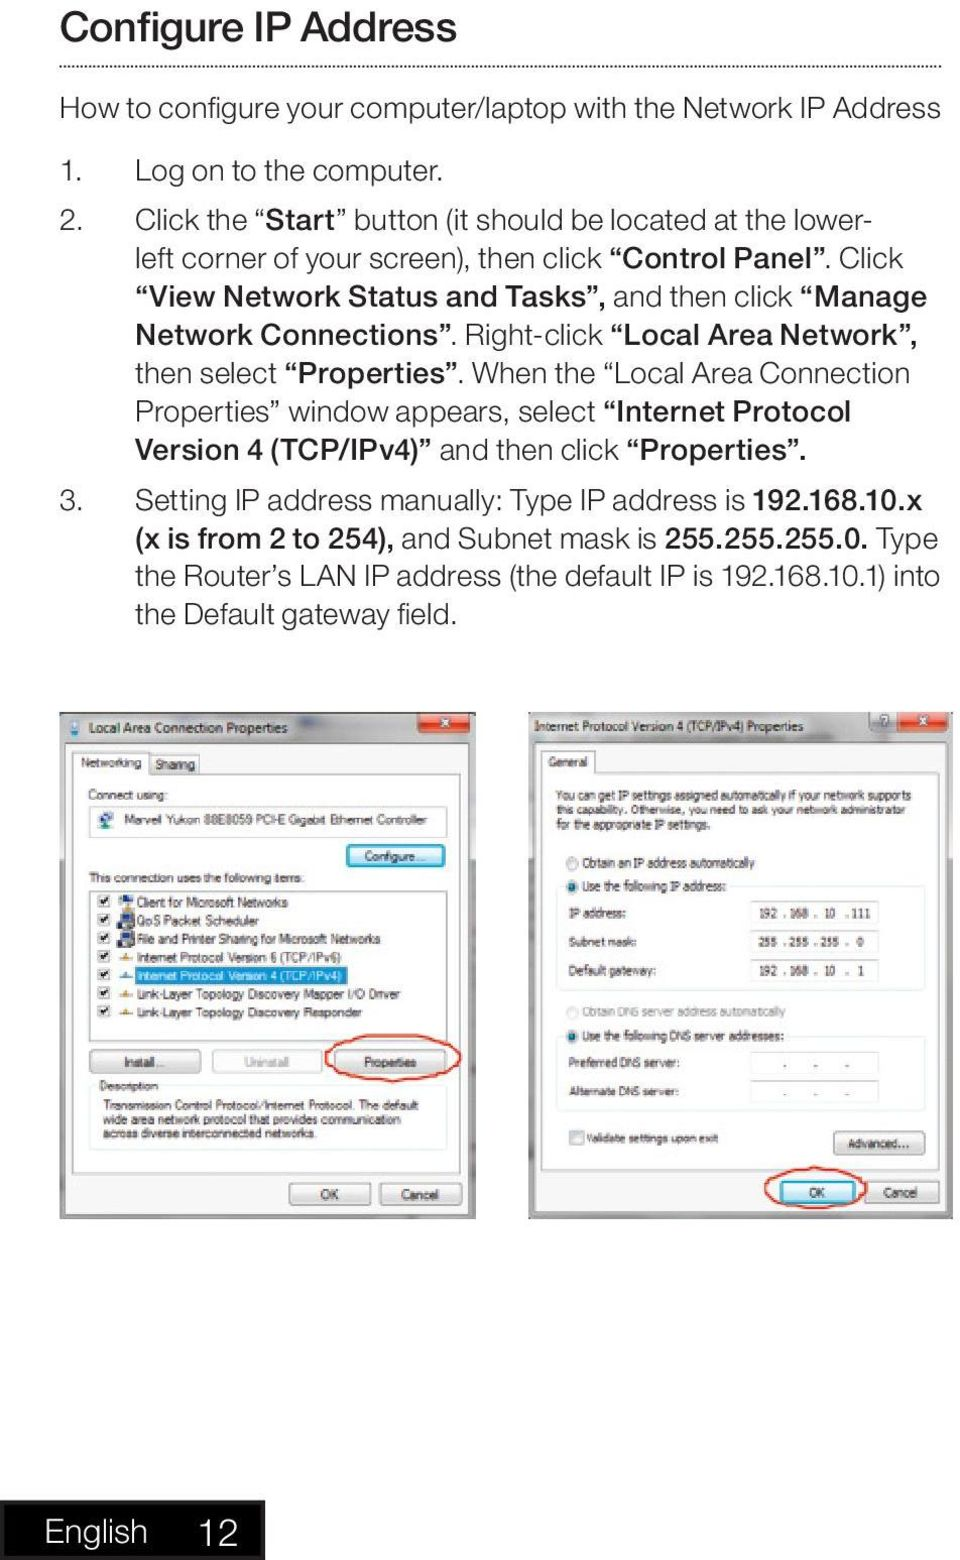 Click View Network Status and Tasks, and then click Manage Network Connections. Right-click Local Area Network, then select Properties.